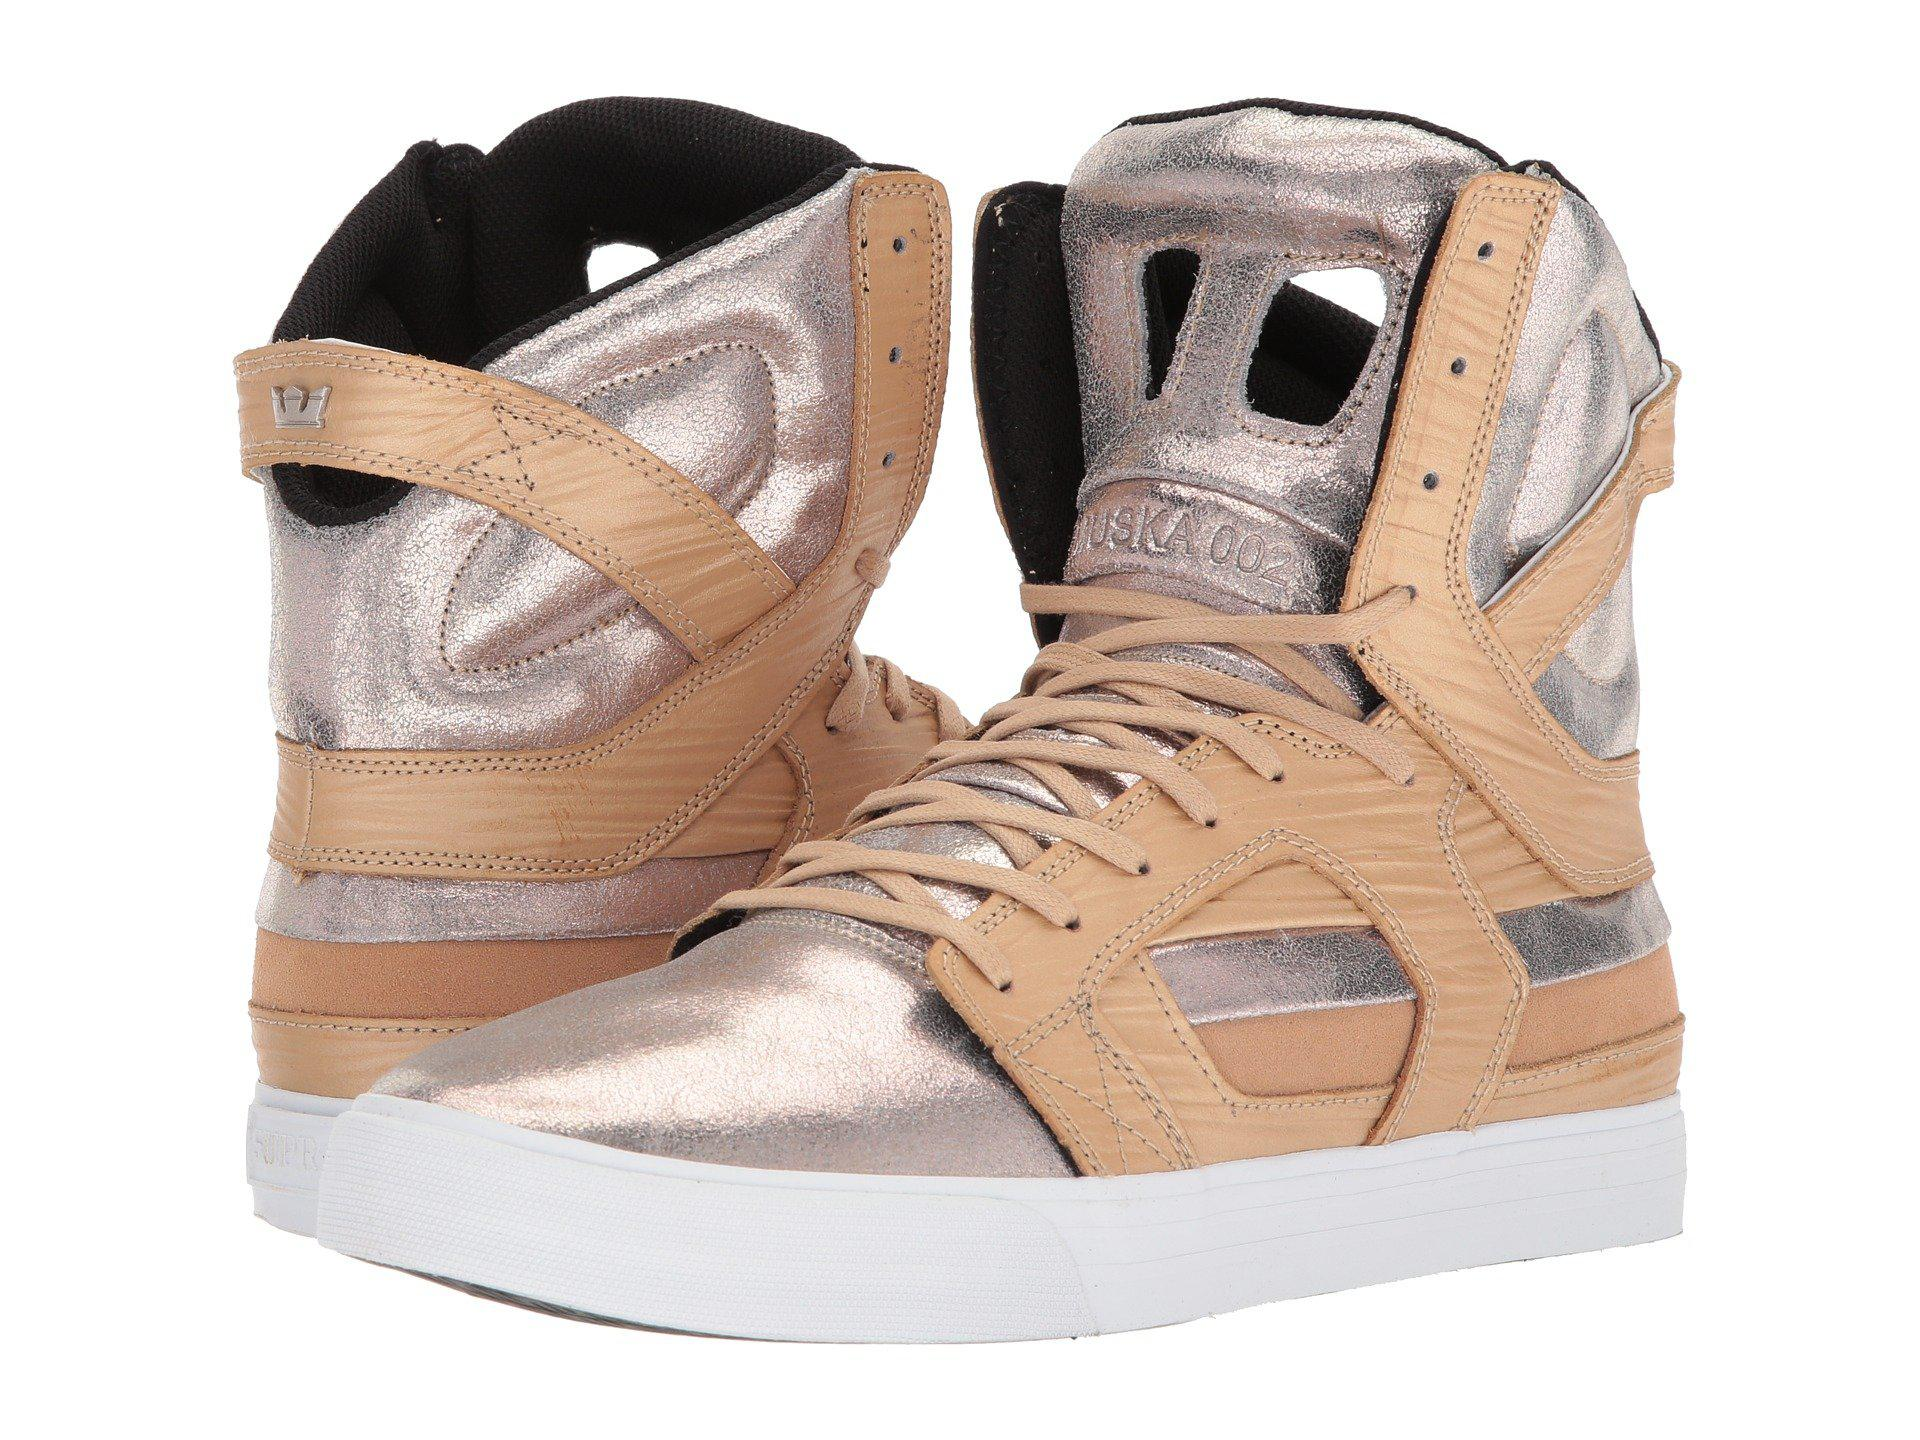 6997563fee2 Lyst - Supra Skytop Ii (champagne/white) Men's Skate Shoes in White ...